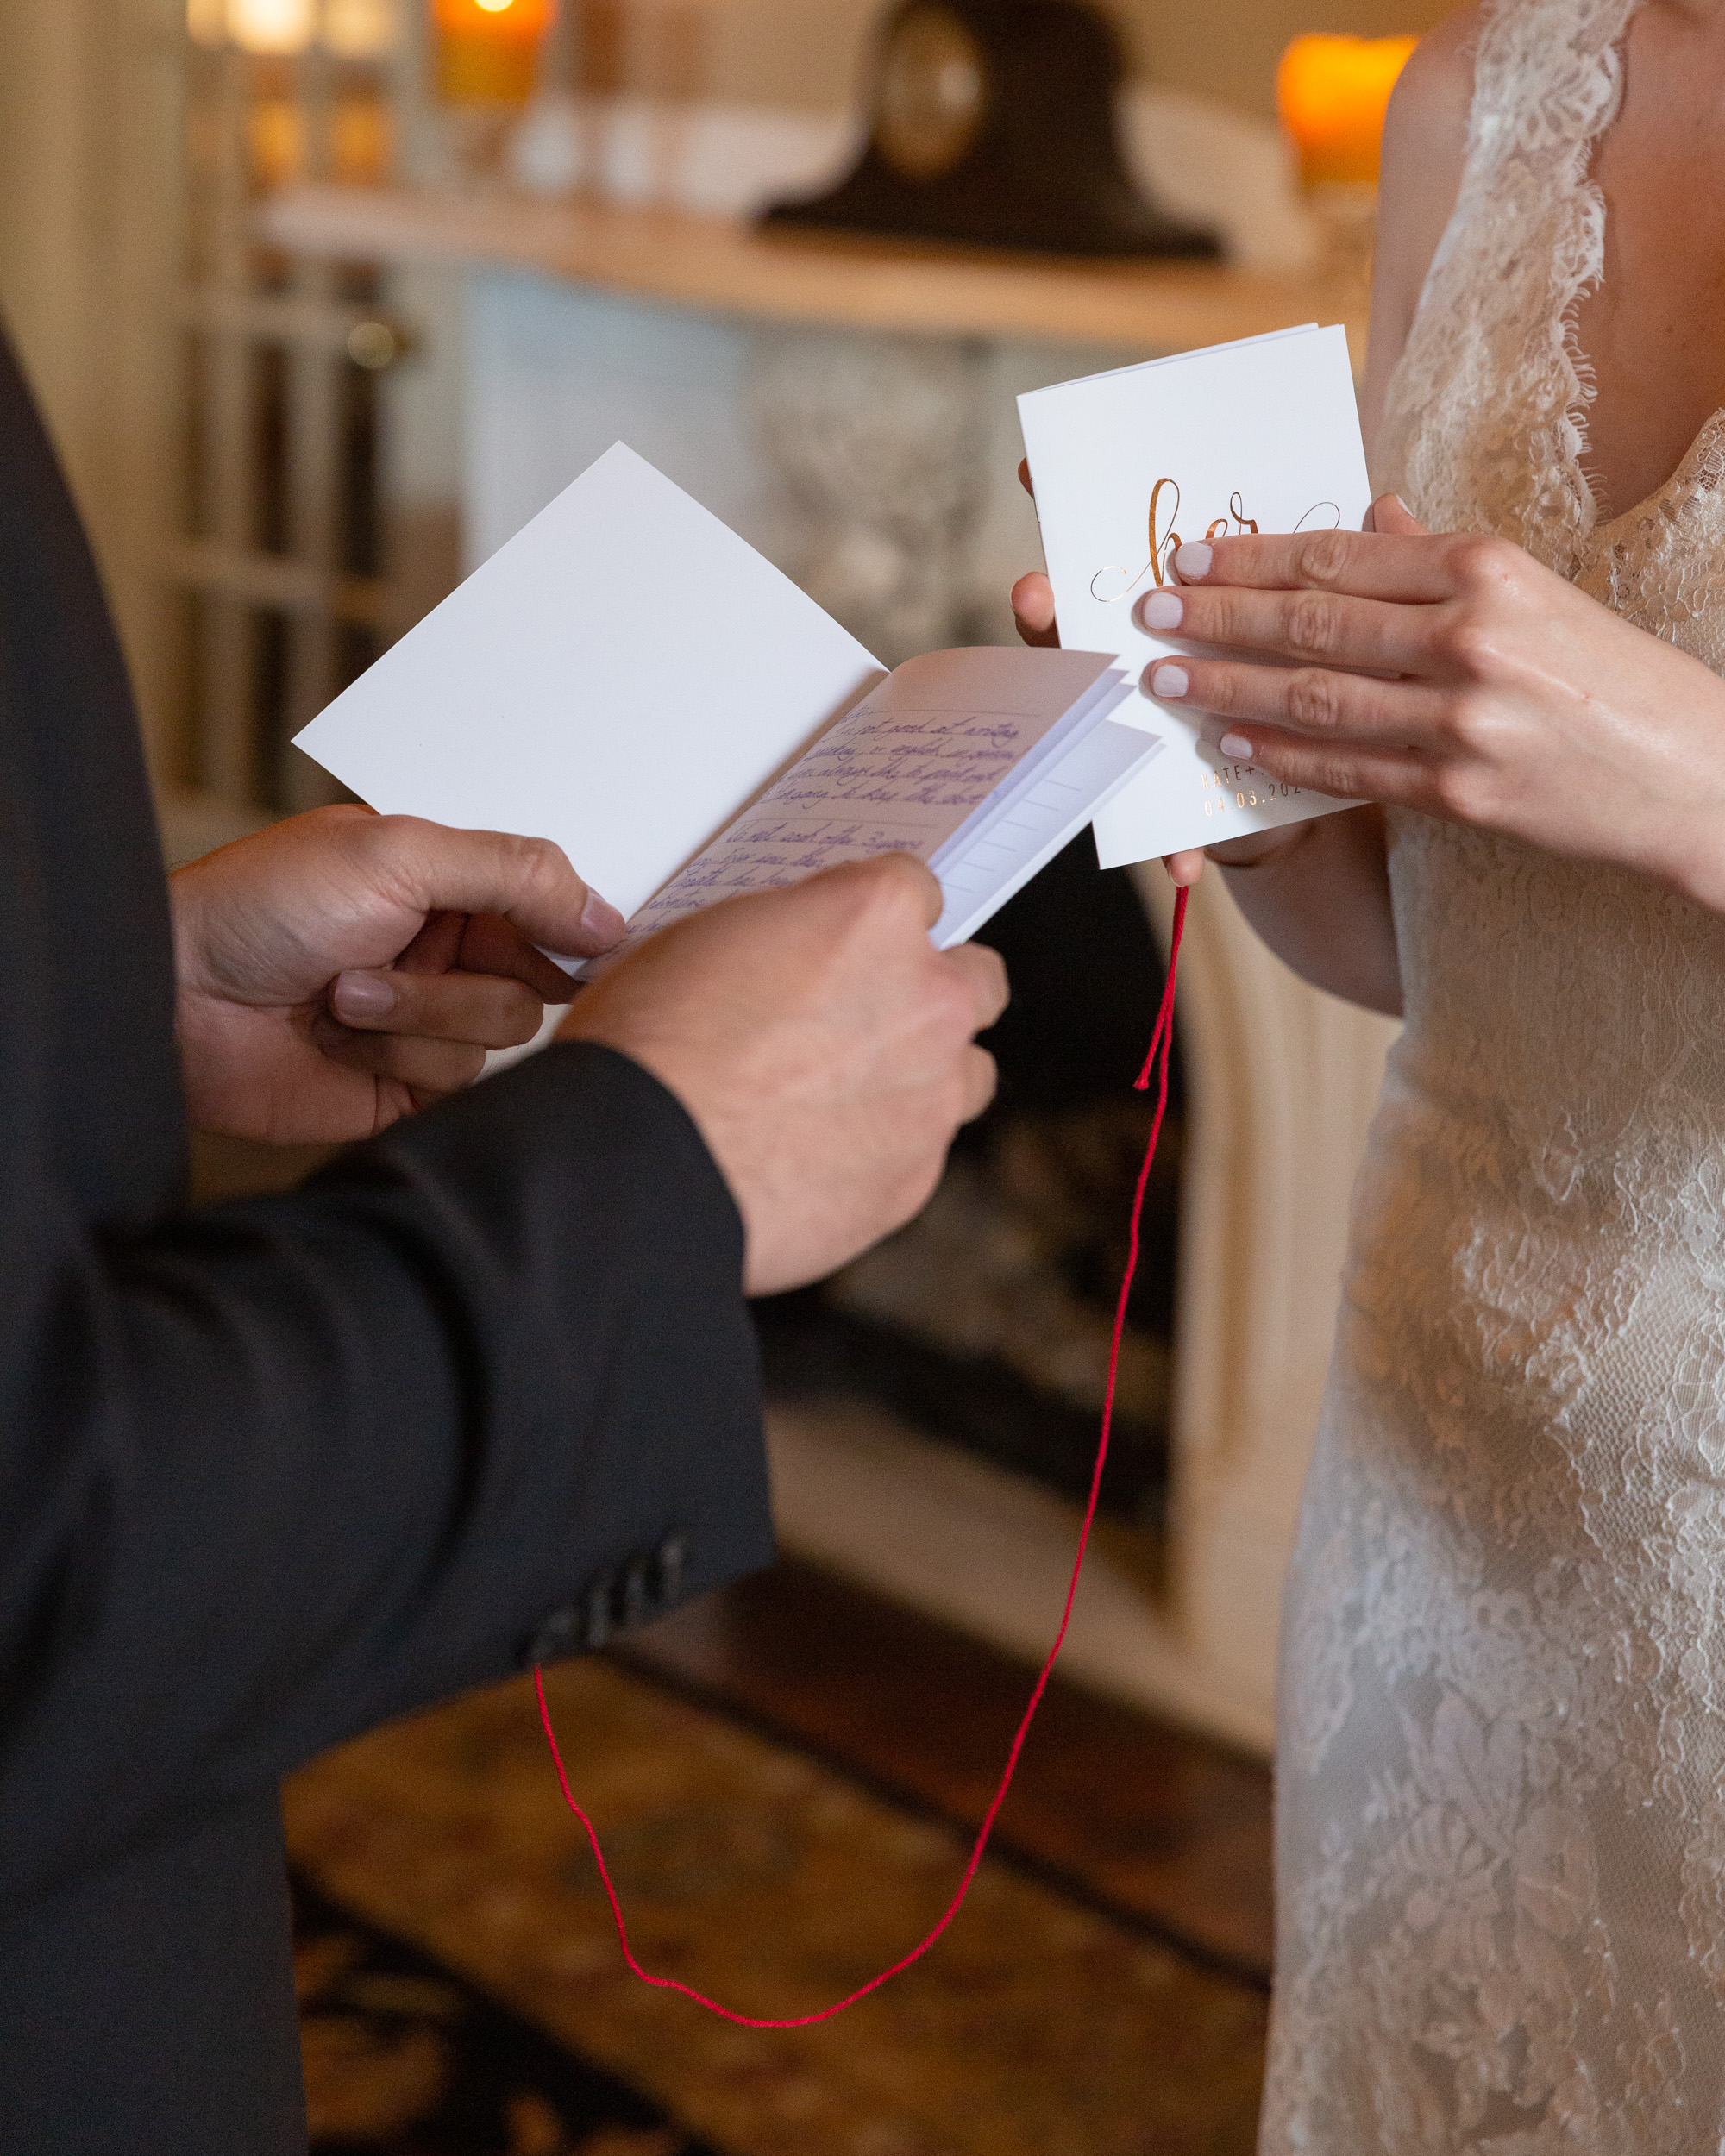 Detail photo of a bride and groom opening their vows books at their wedding ceremony in the Sayre Mansion in Bethlehem, PA by Laura Billingham